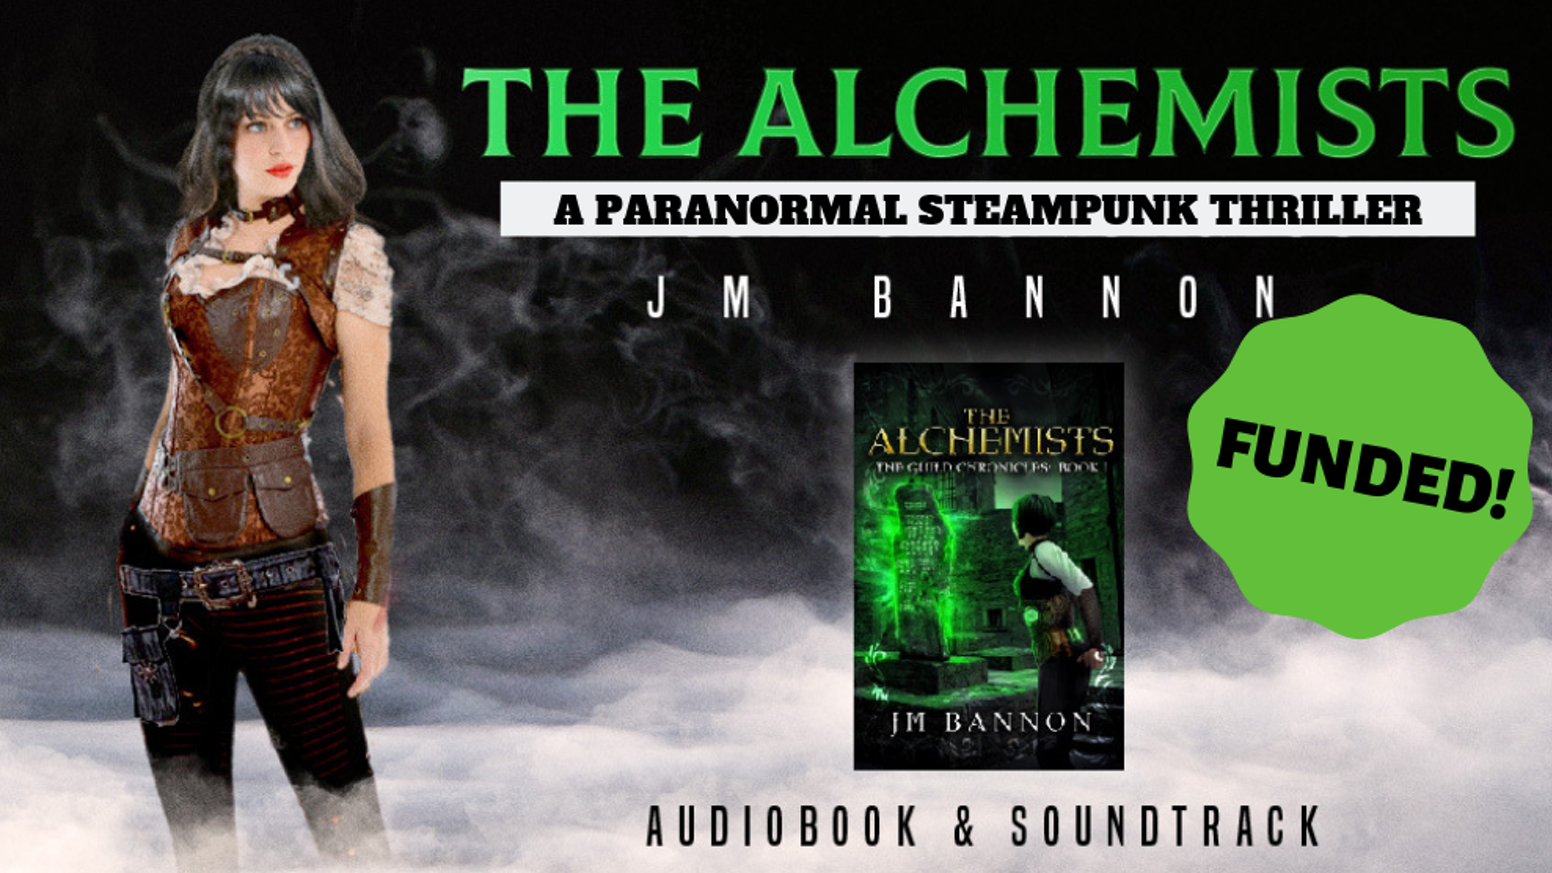 JM Bannon's  steampunk thrillers come to audiobook and packs your ears with alchemy fueled thrills and an original soundtrack.